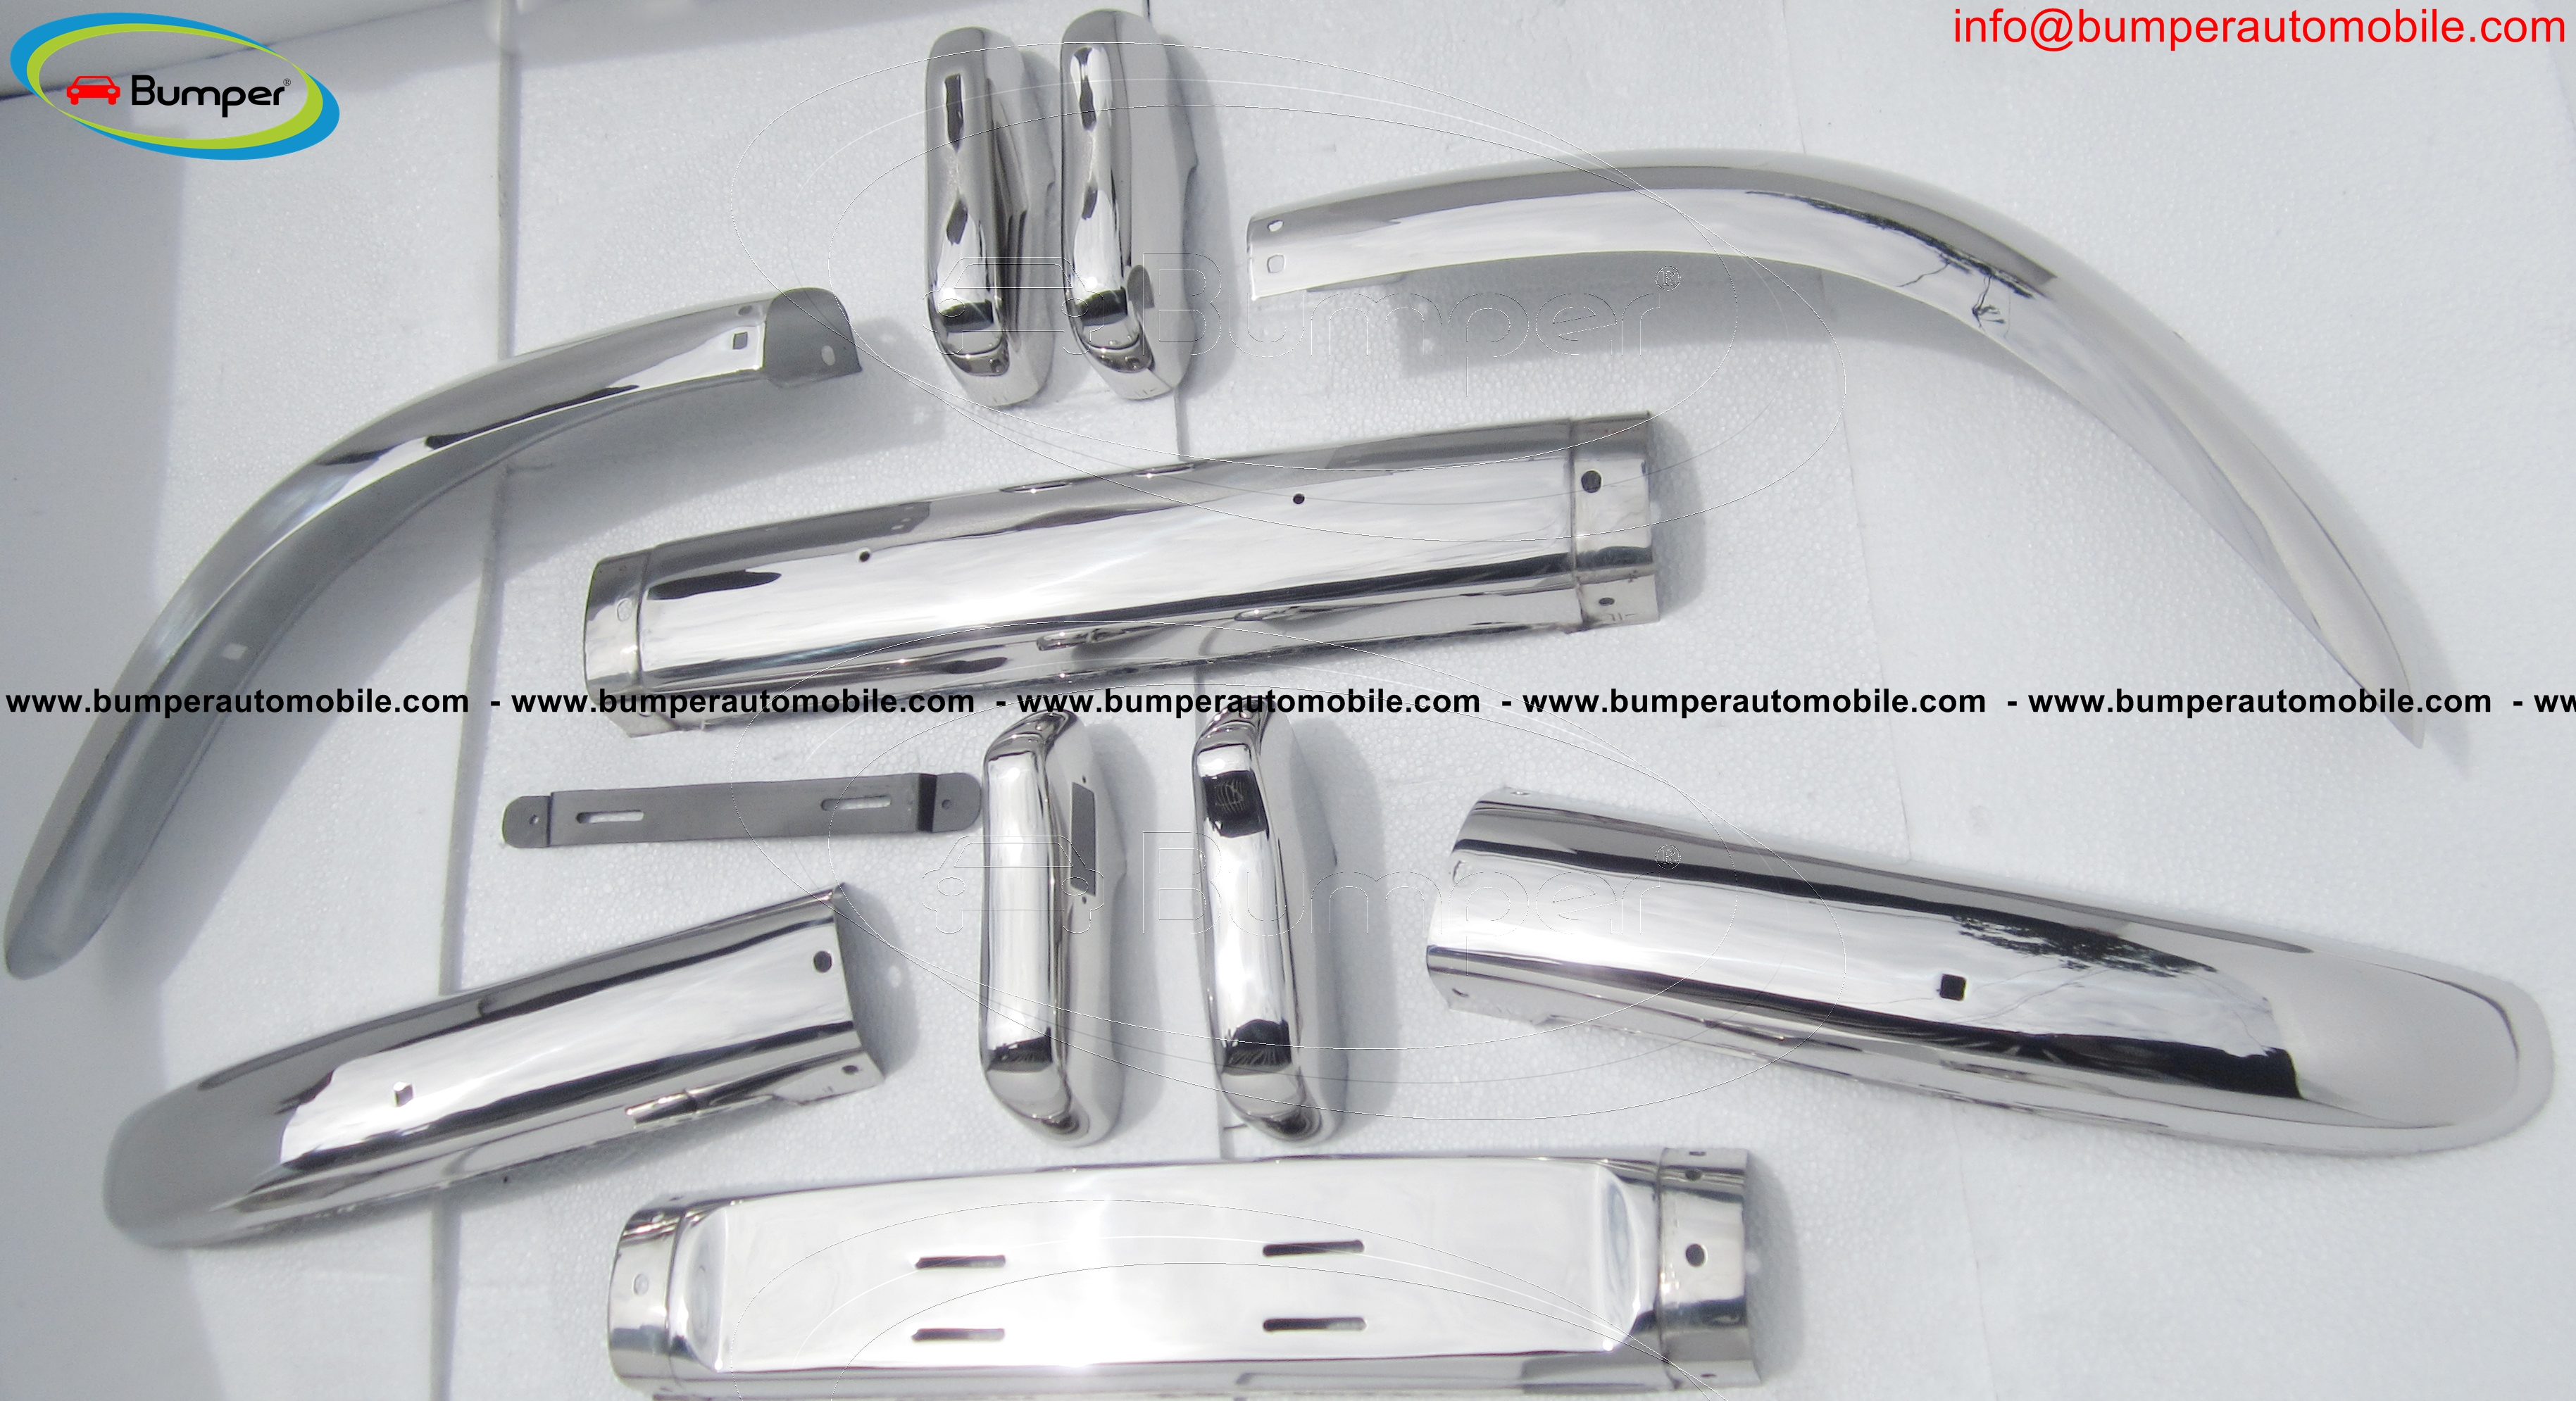 Volvo PV 544 Euro (1958-1965) bumper stainless steel(not assembled)